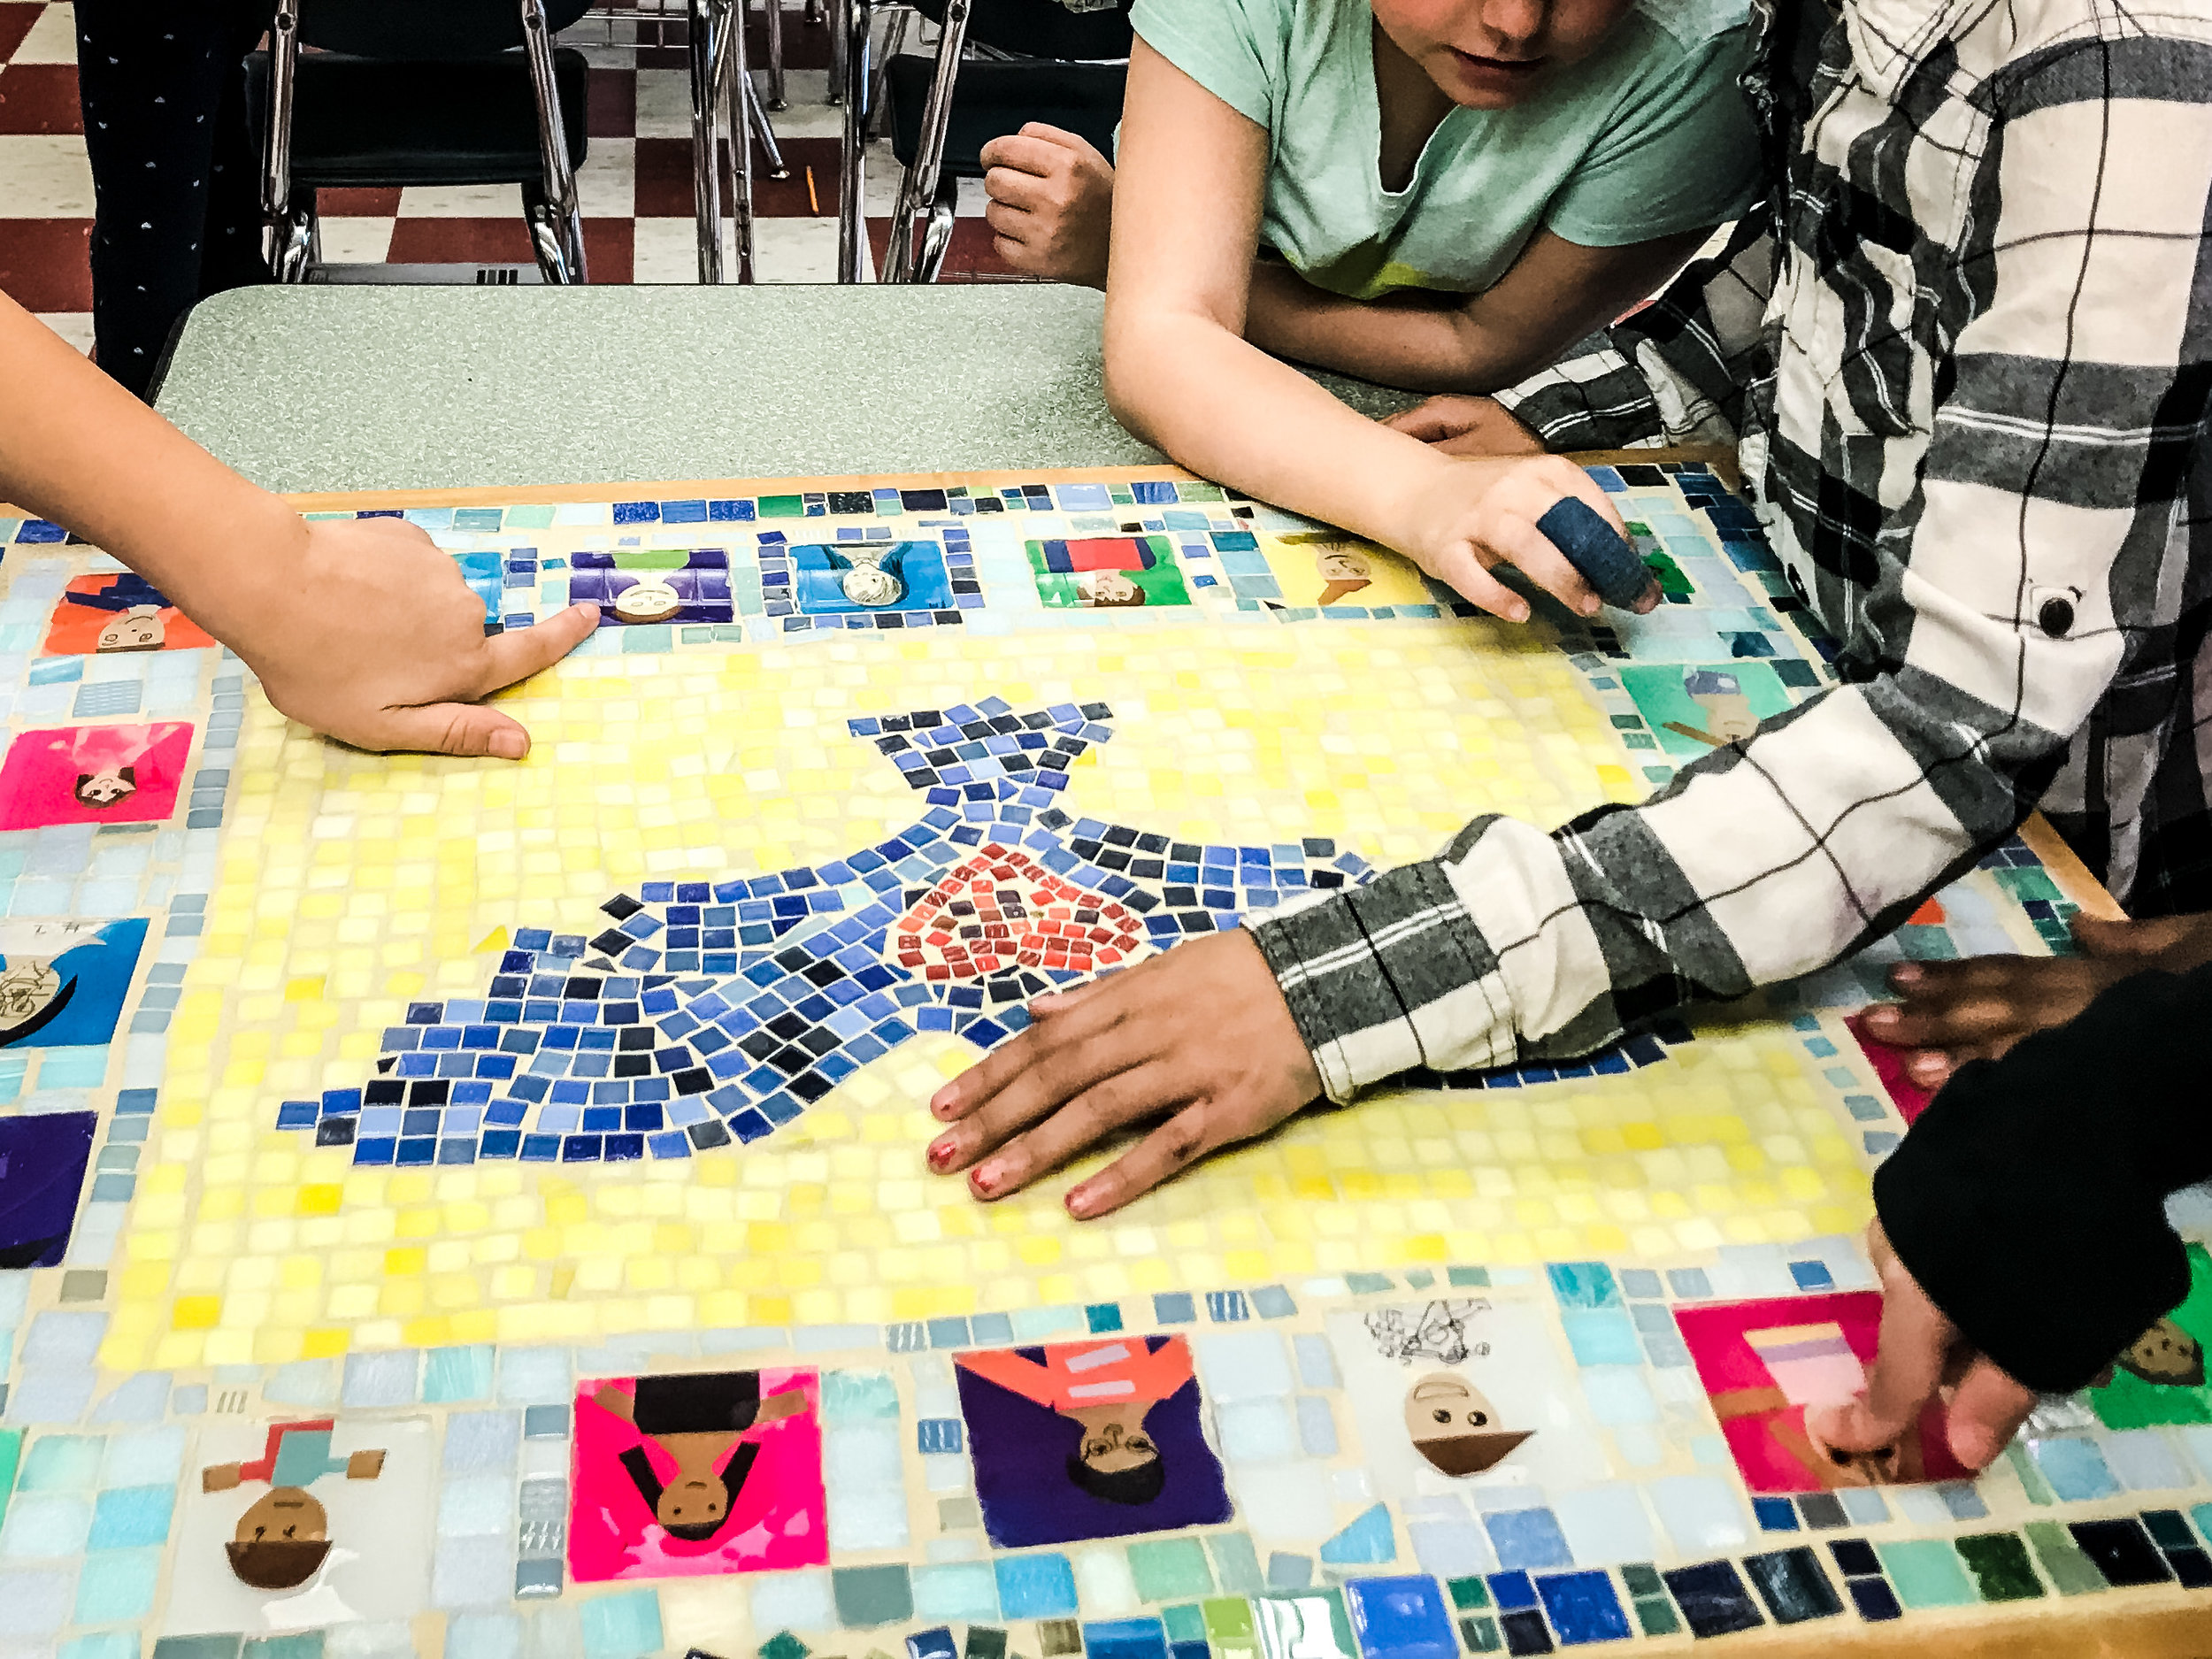 Students marvel at their finished mosaic project